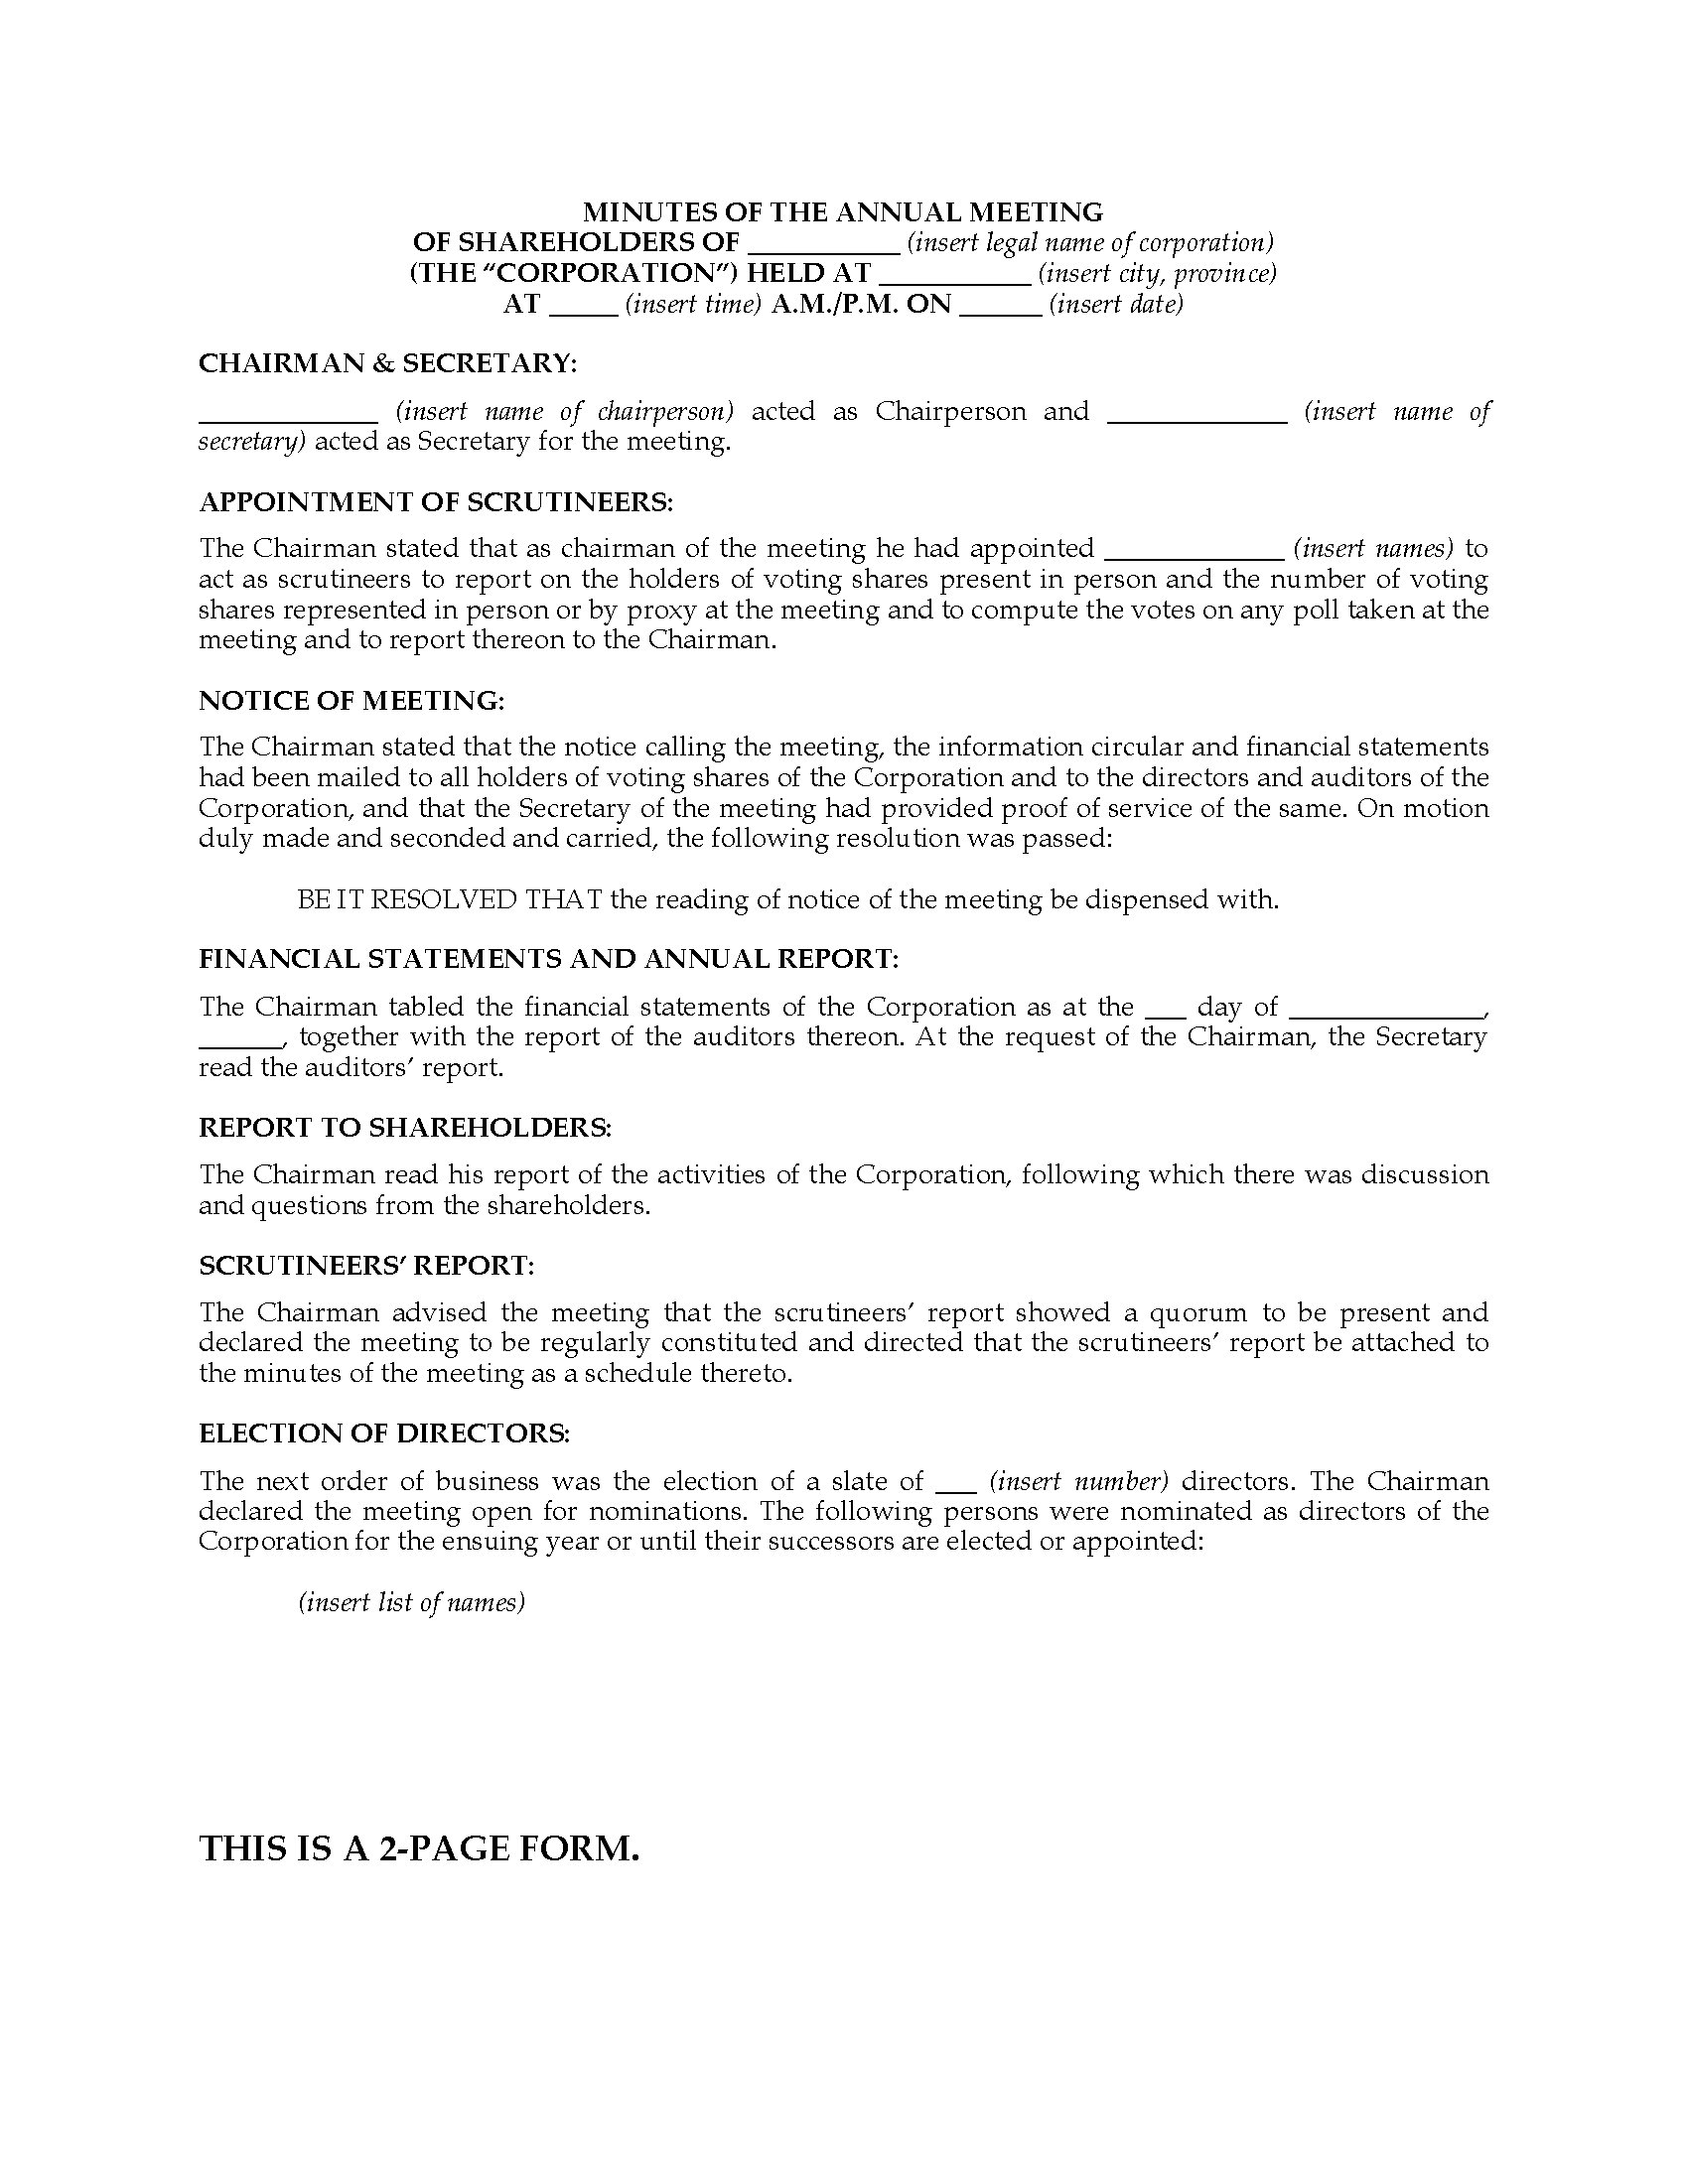 Canada Minutes of Annual Shareholders Meeting | Legal Forms and ...